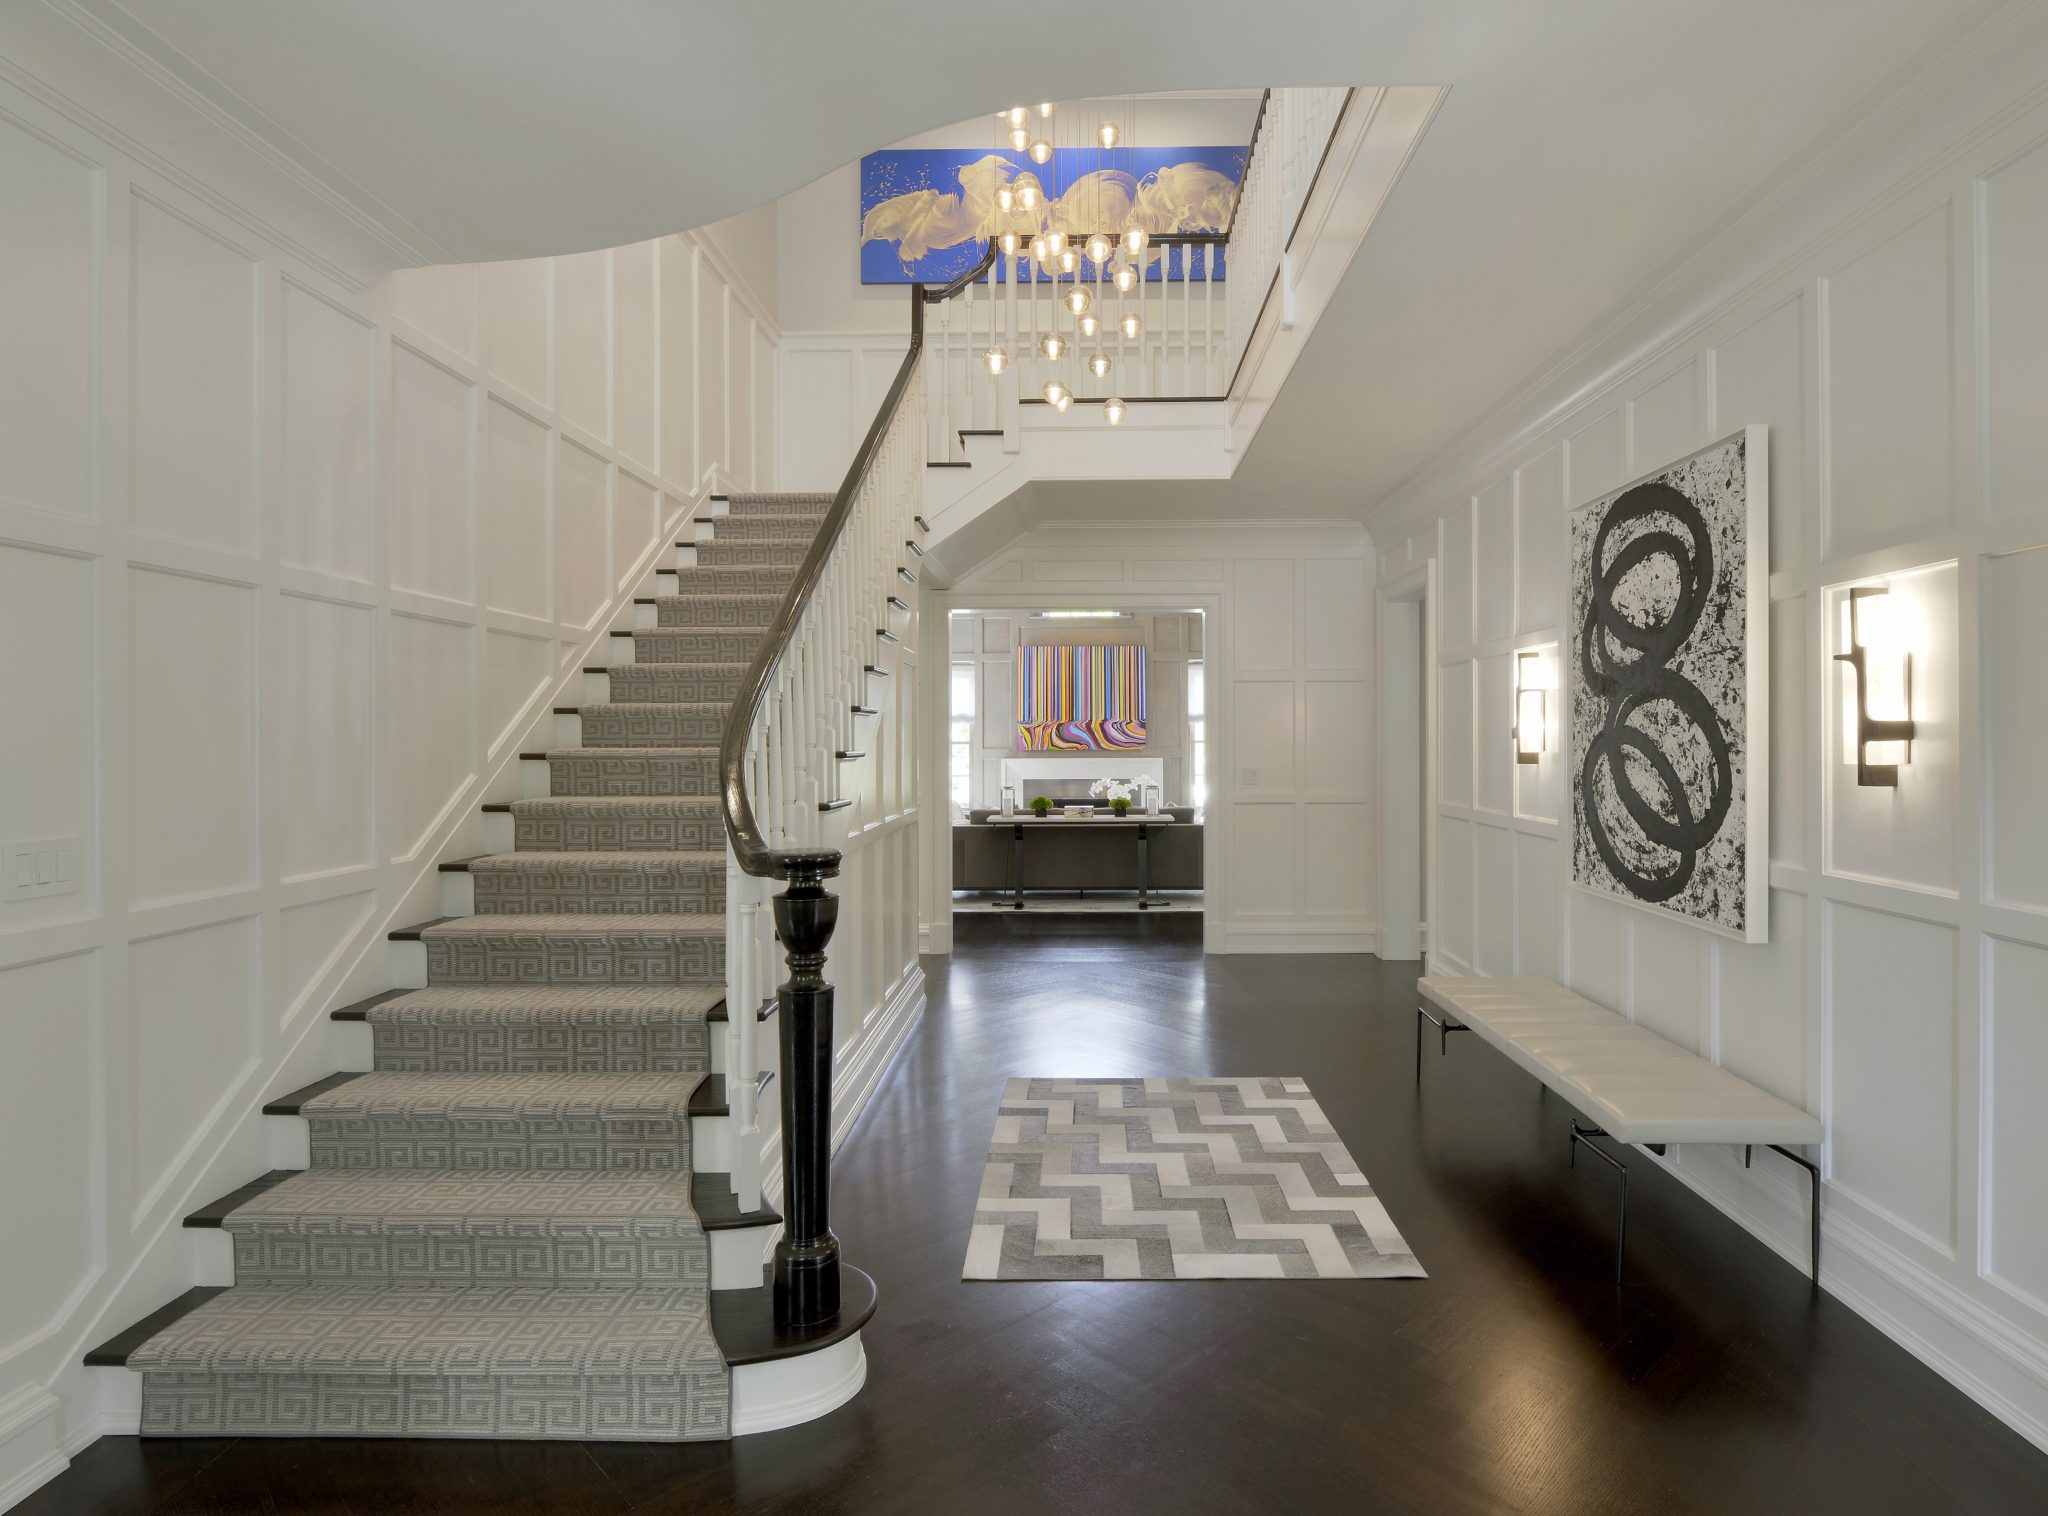 Stair hall with paneled walls by Alisberg Parker Architects